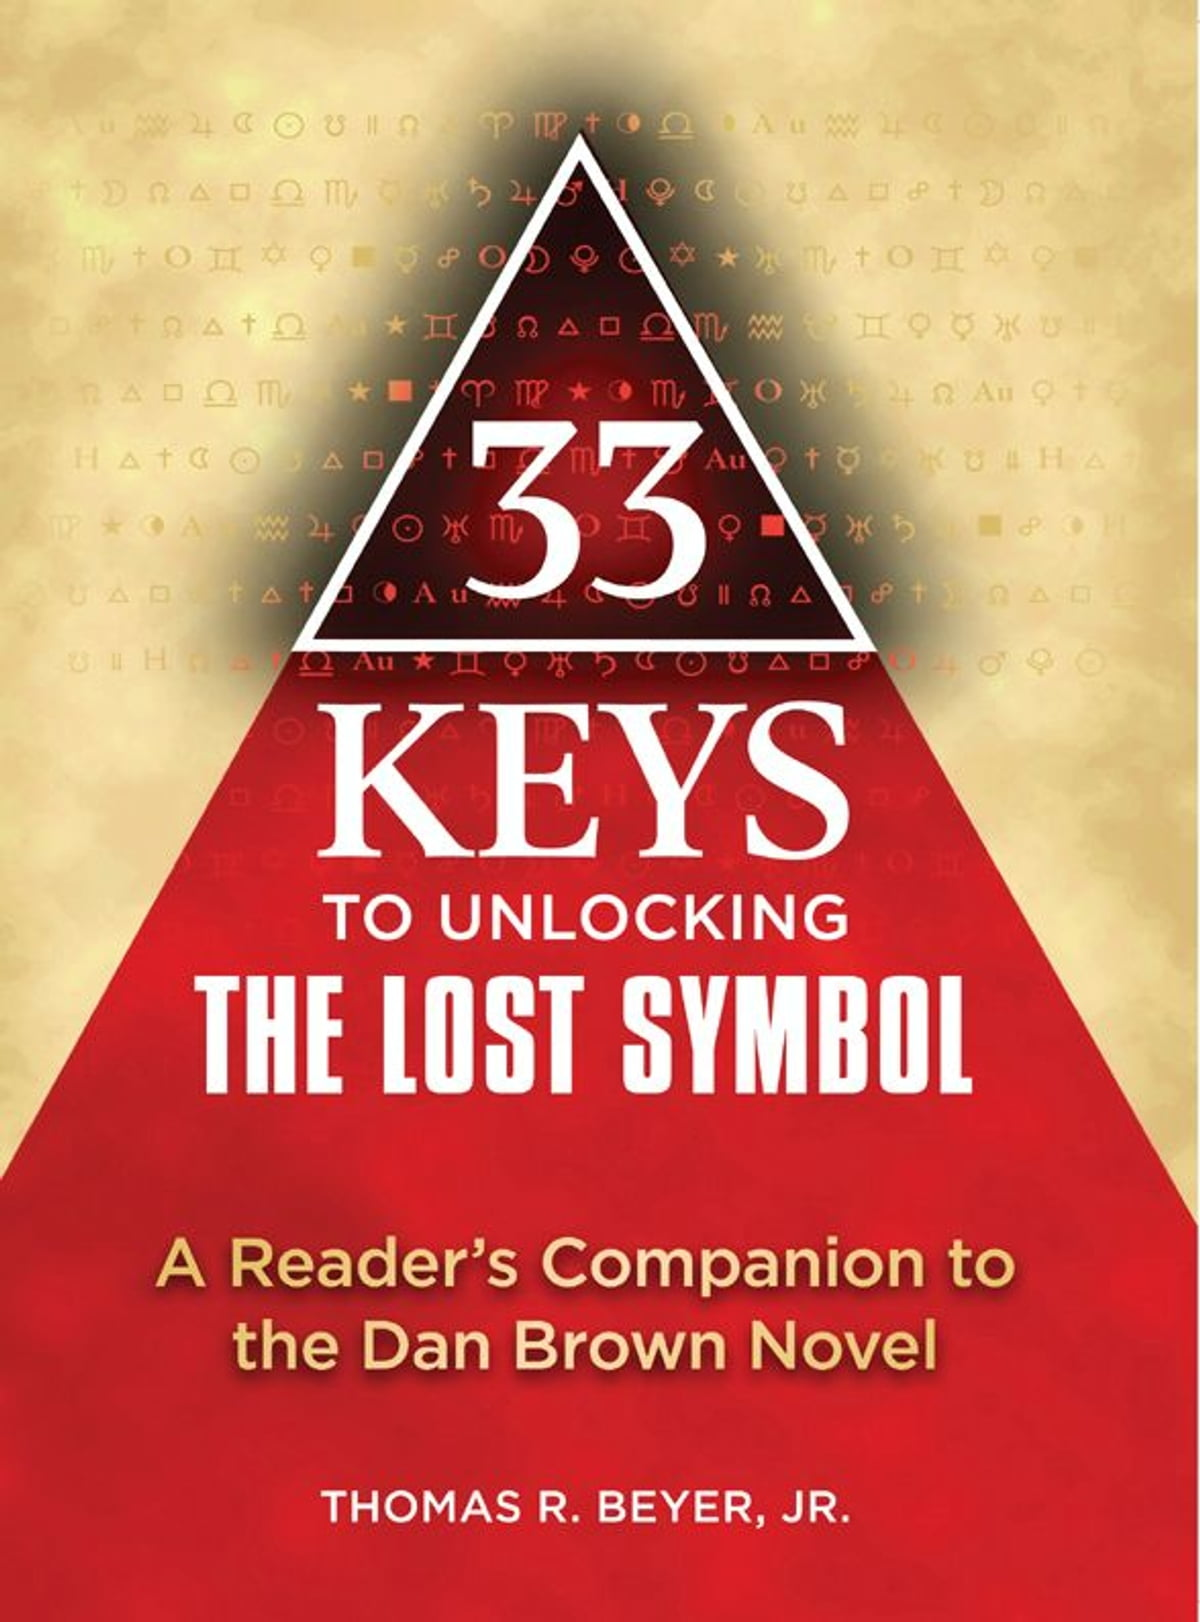 33 keys to unlocking the lost symbol ebook by thomas r beyer jr 33 keys to unlocking the lost symbol ebook by thomas r beyer jr 9781557049223 rakuten kobo buycottarizona